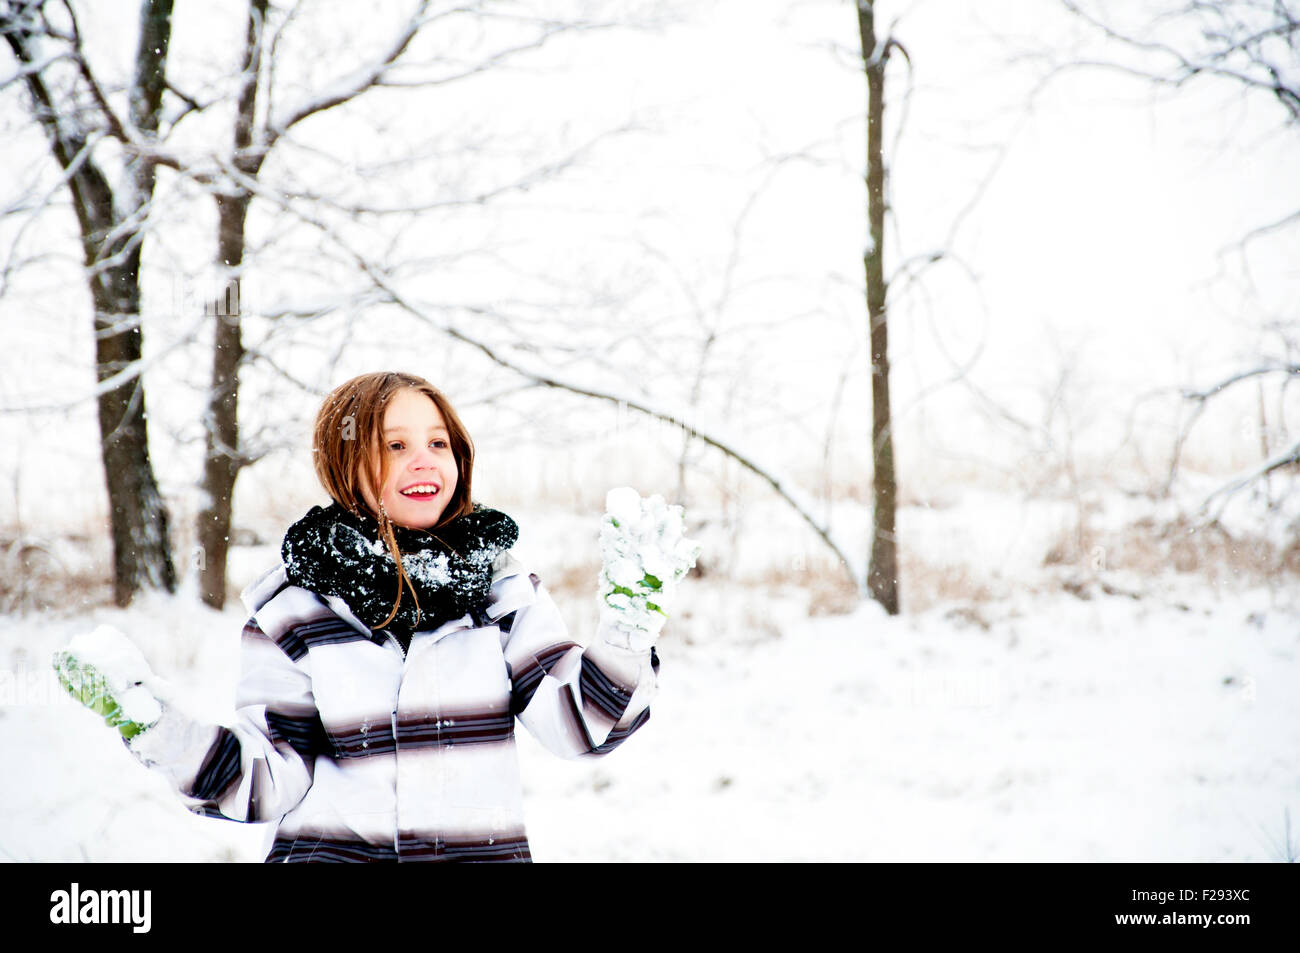 Girl holding snowball à jeter Photo Stock